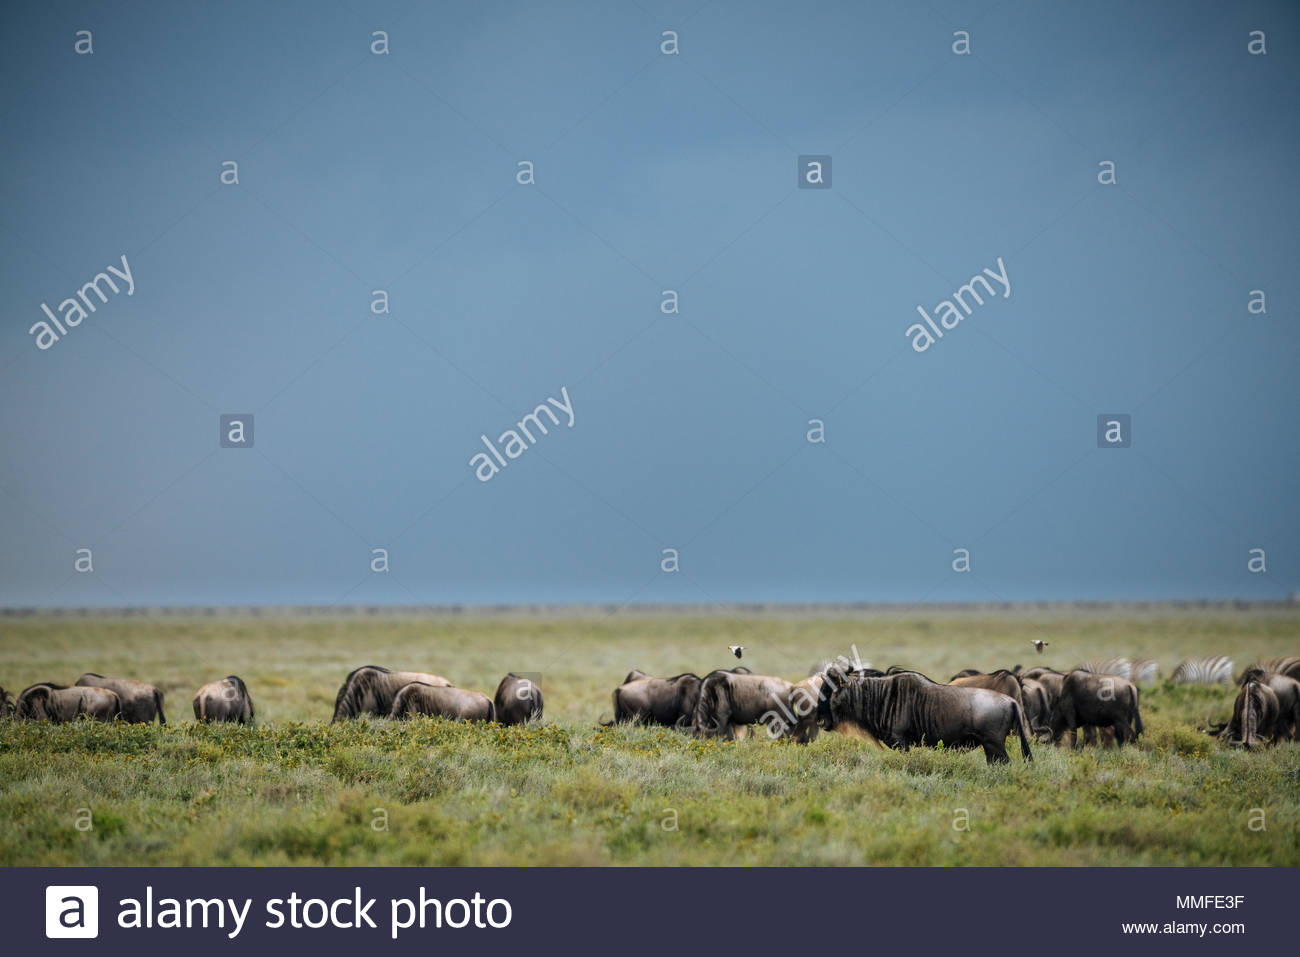 Blue wildebeests, Connochaetes taurinus, migrating in Southern Serengeti National Park. - Stock Image